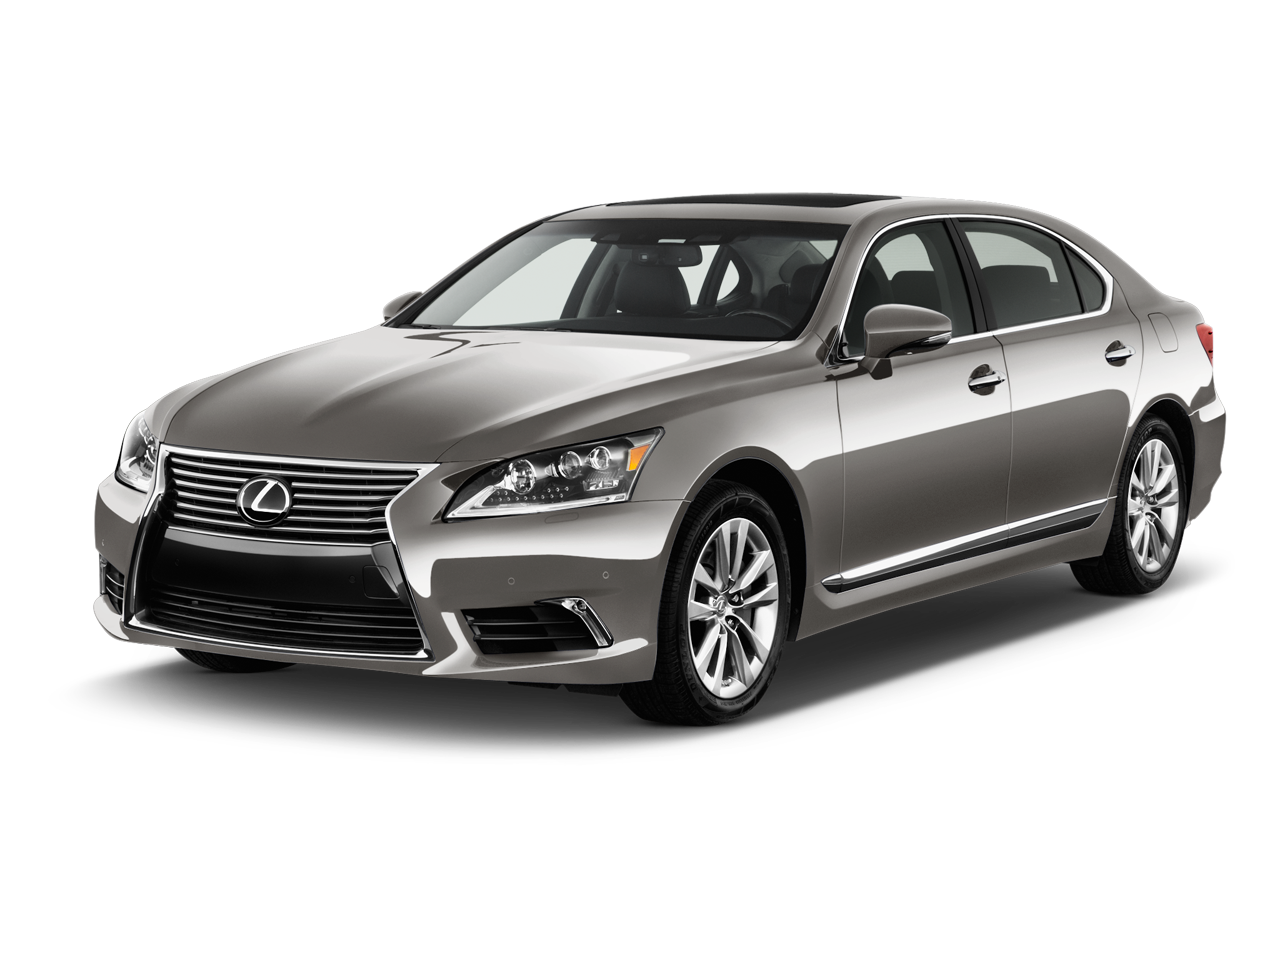 new 2017 lexus ls 460 chantilly va pohanka lexus. Black Bedroom Furniture Sets. Home Design Ideas